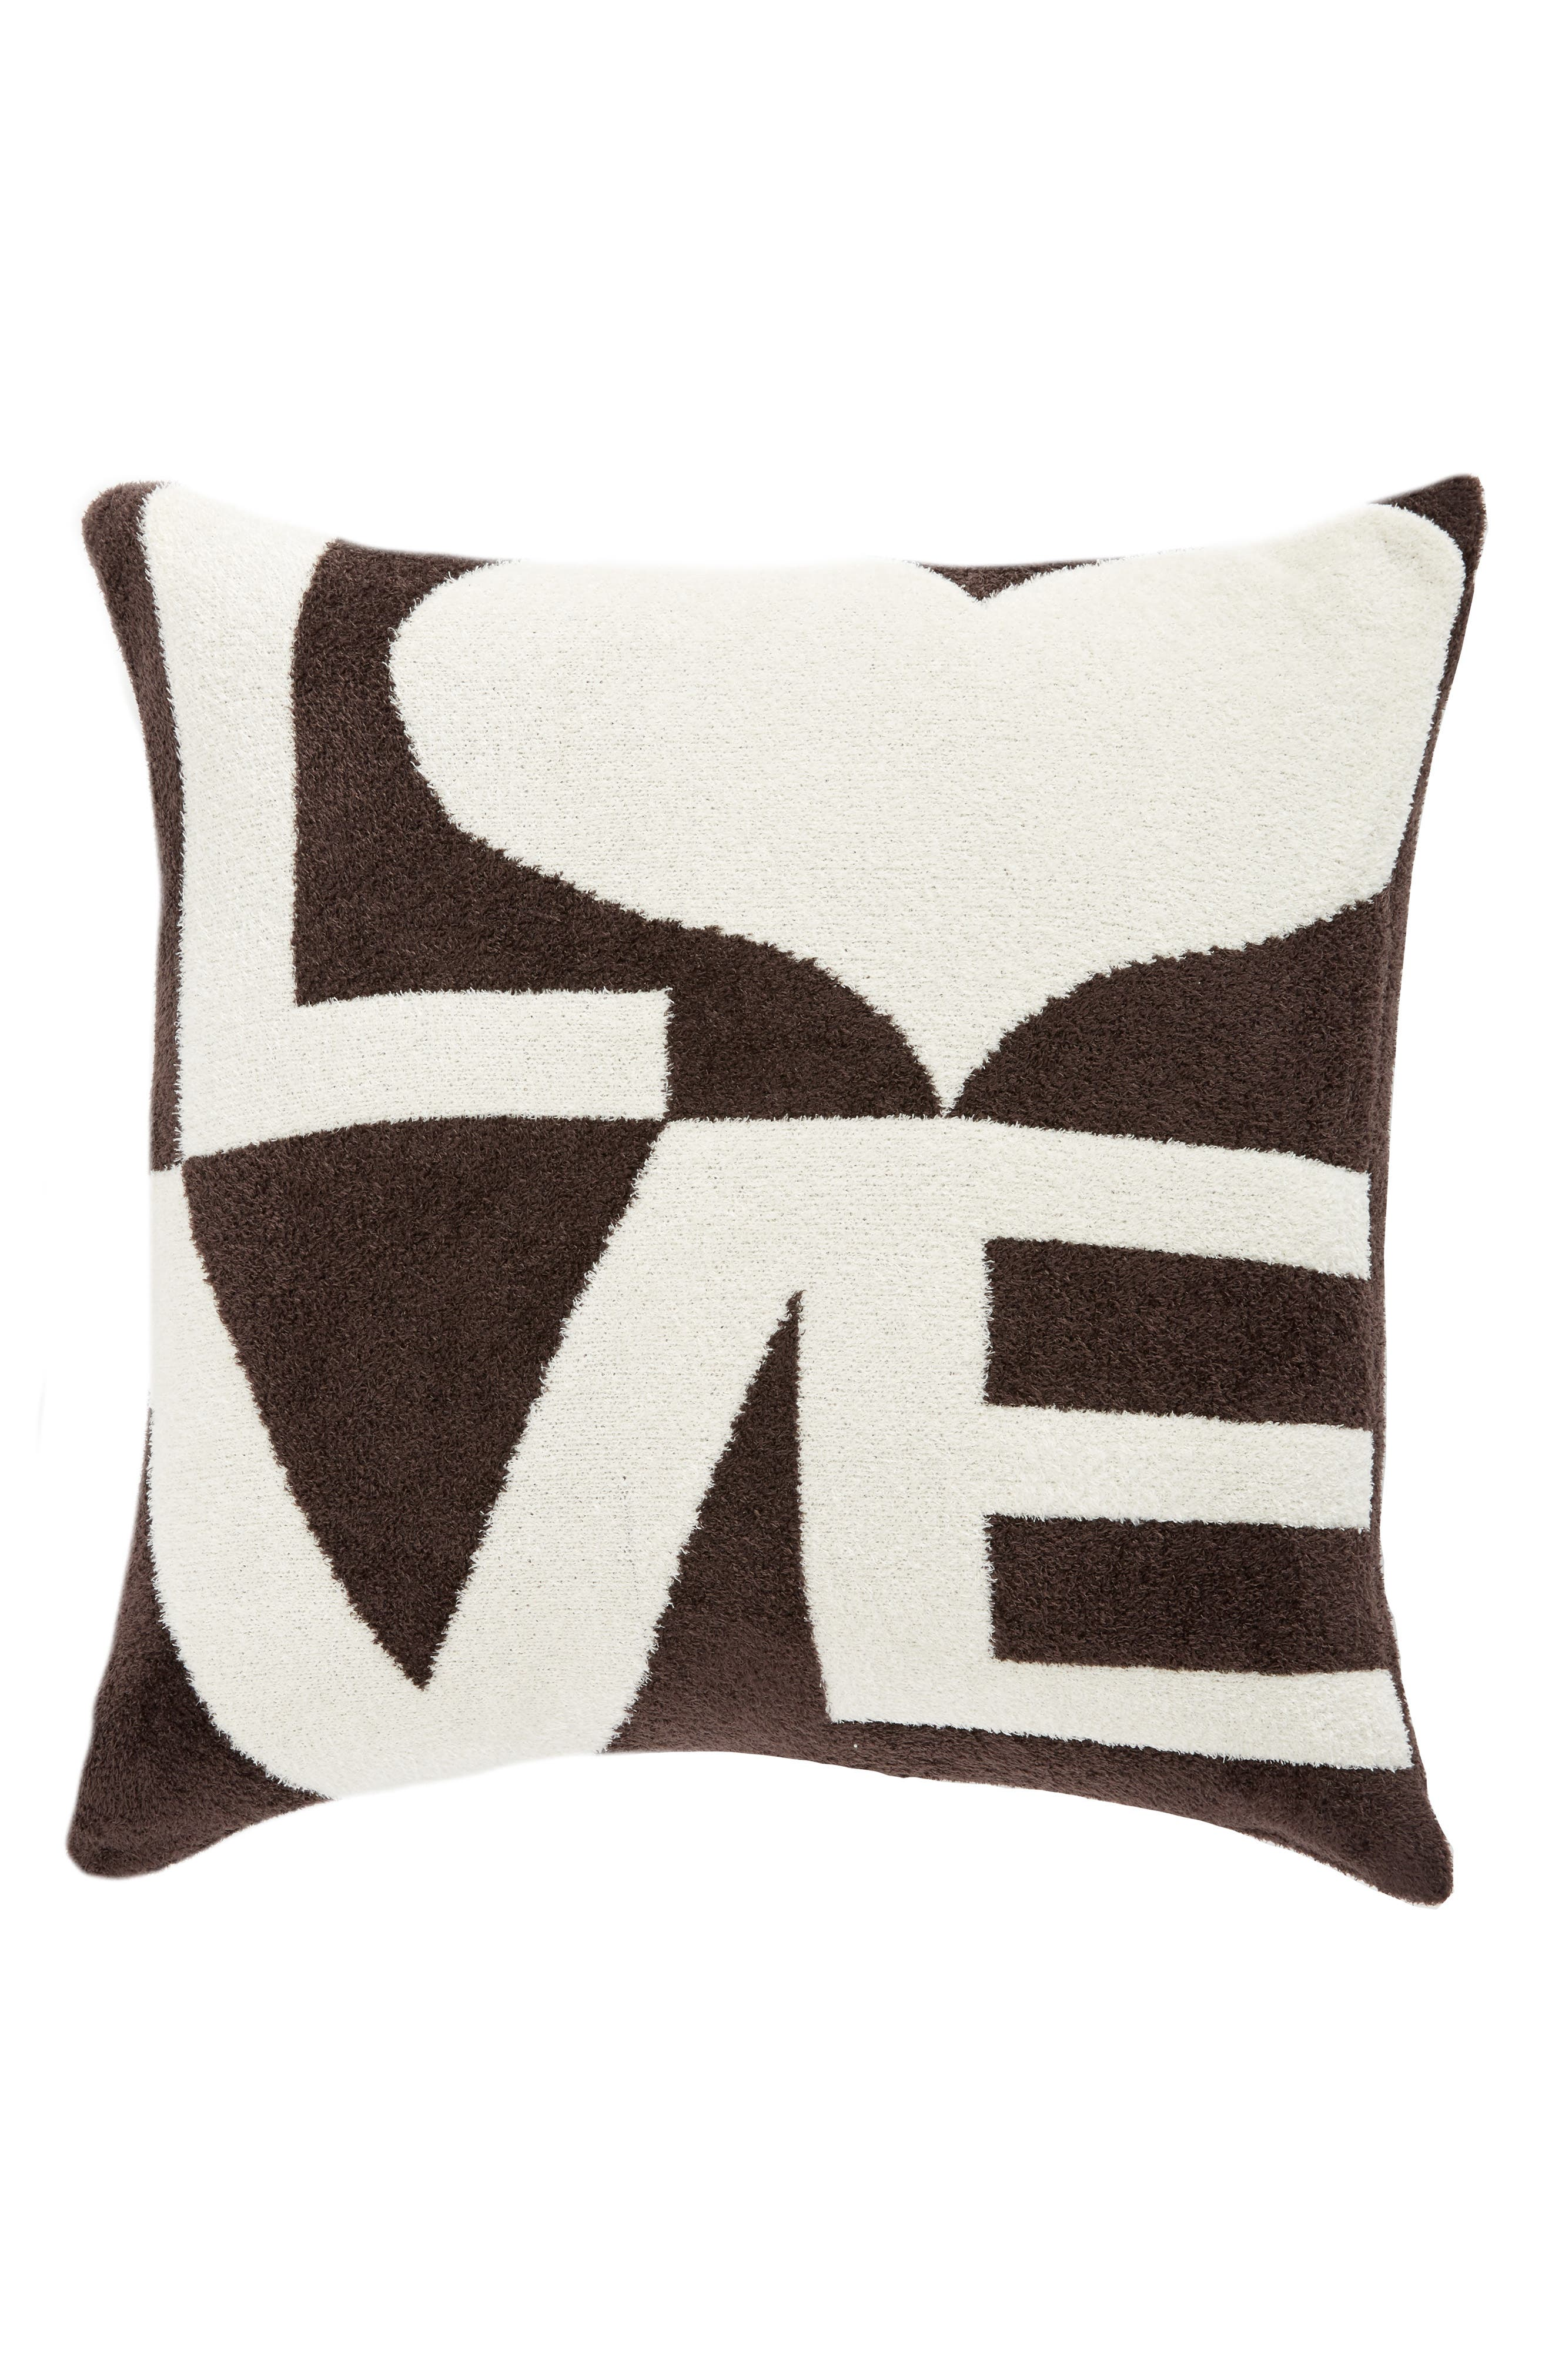 Dolce Love Throw Pillow,                         Main,                         color, CHOCOLATE